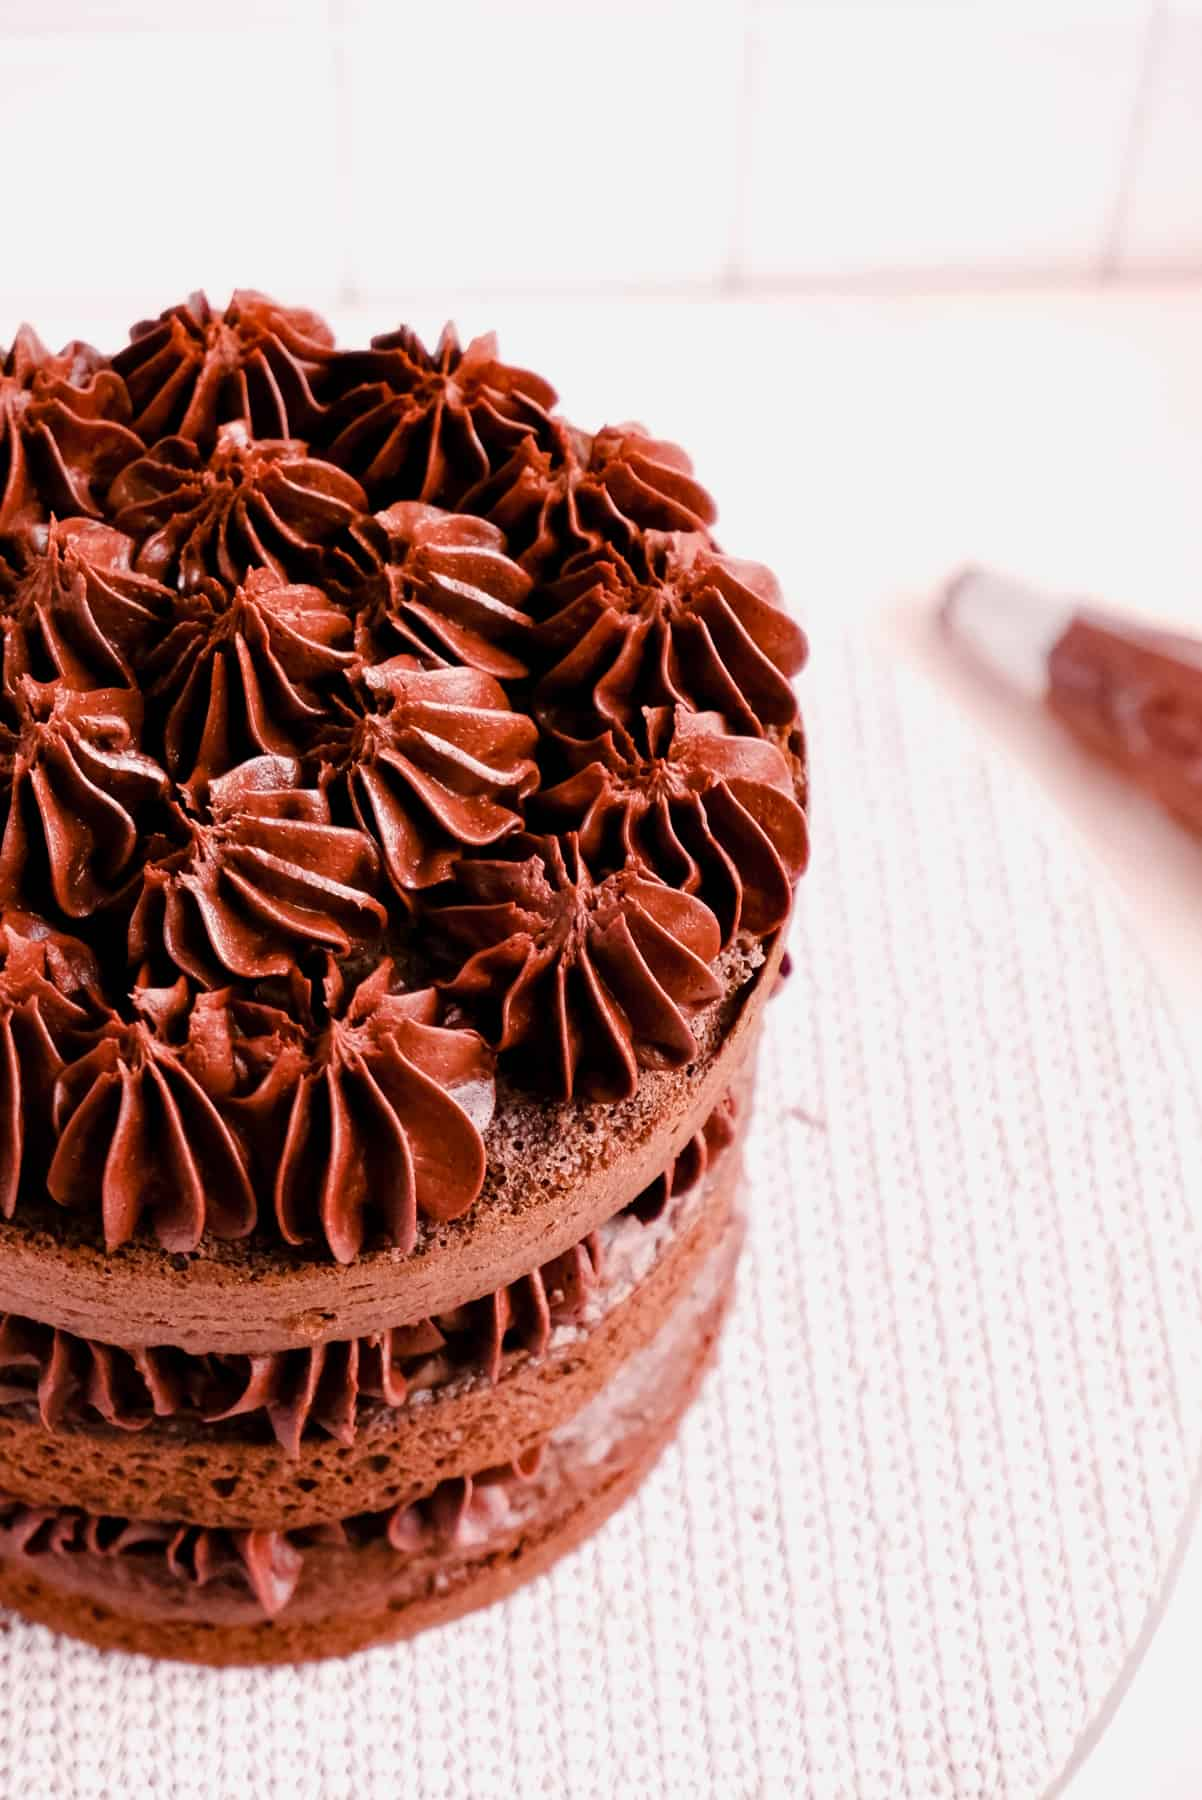 chocolate cake layers filled and topped with chocolate buttercream frosting